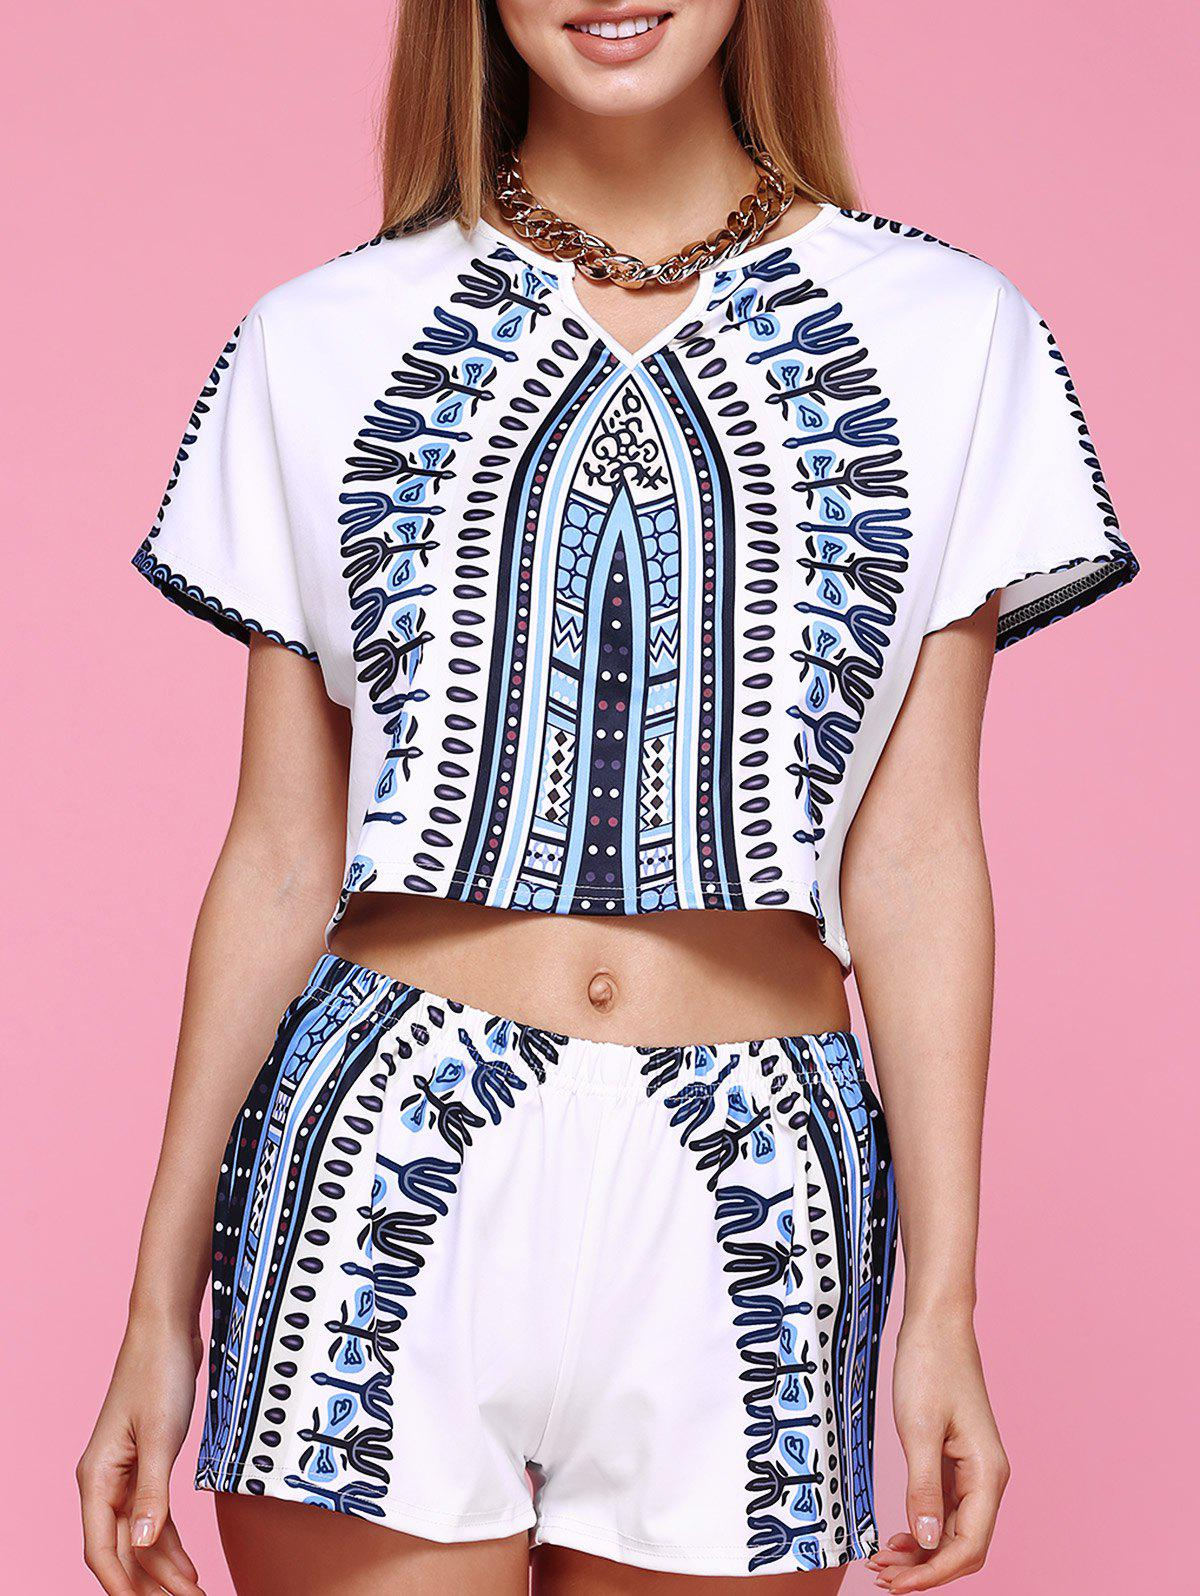 Chic Short Sleeve Printed Crop Top + Elastic Waist Shorts Women's Twinset - WHITE XL